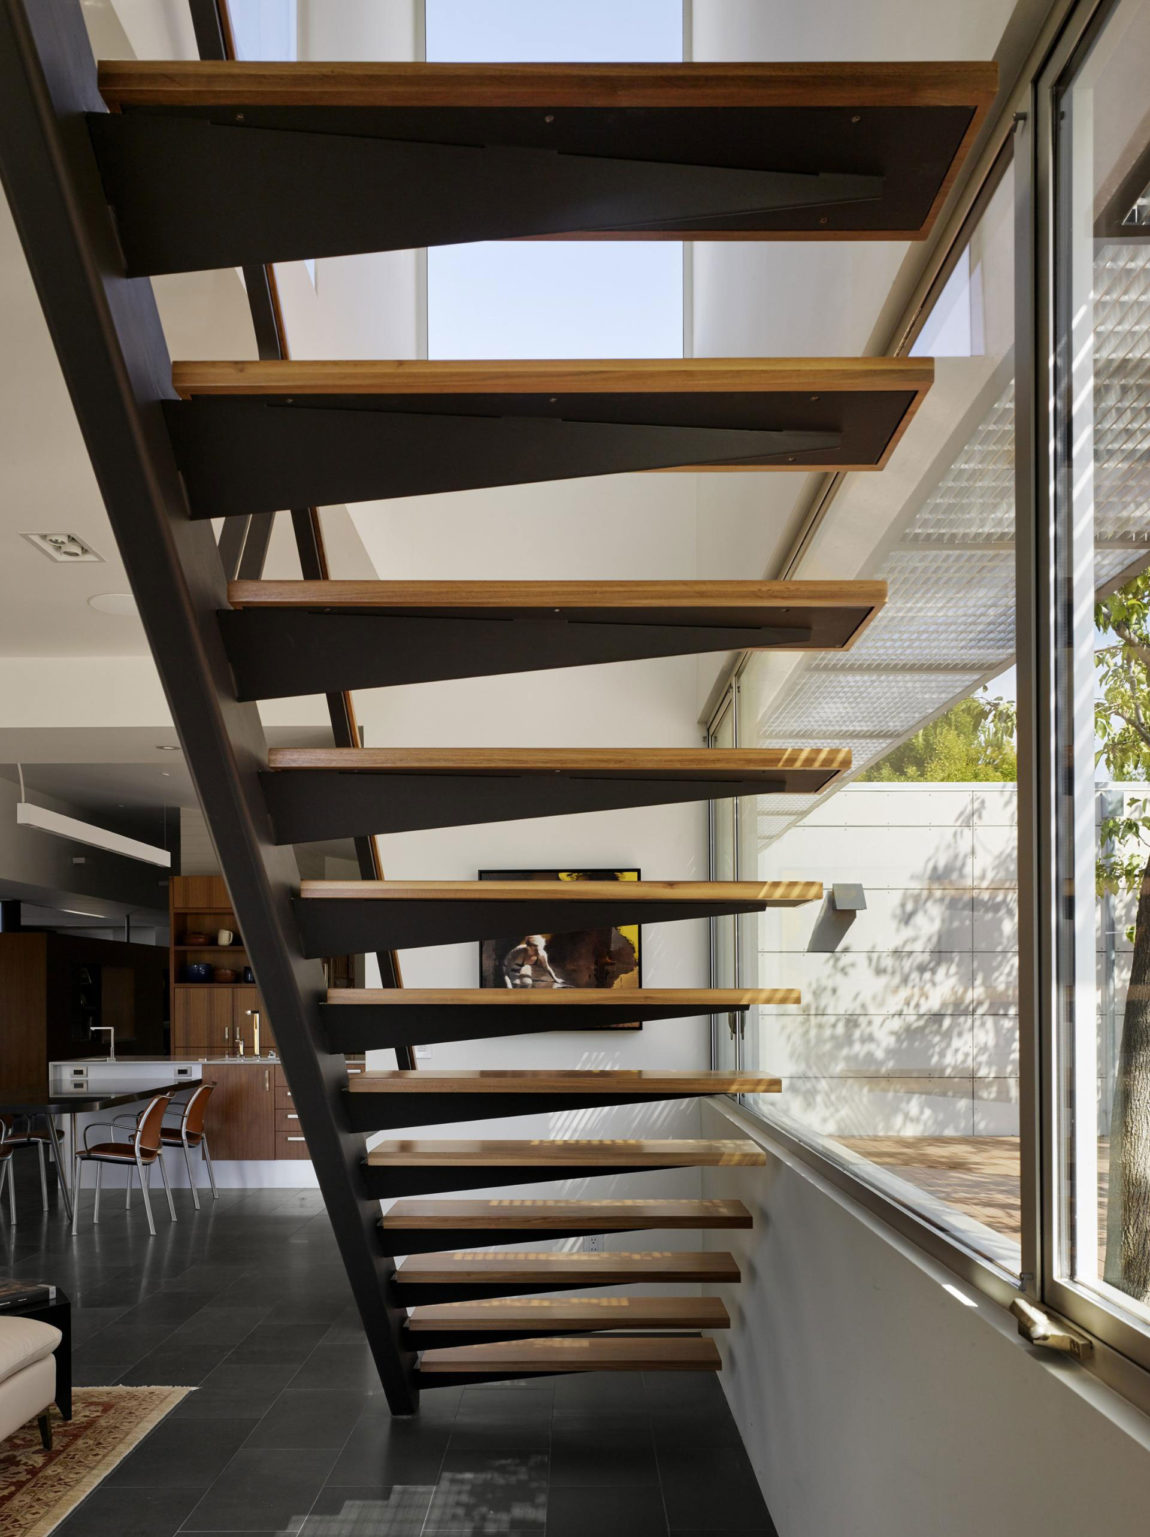 Shou Sugi Ban House by Schwartz and Architecture (12)